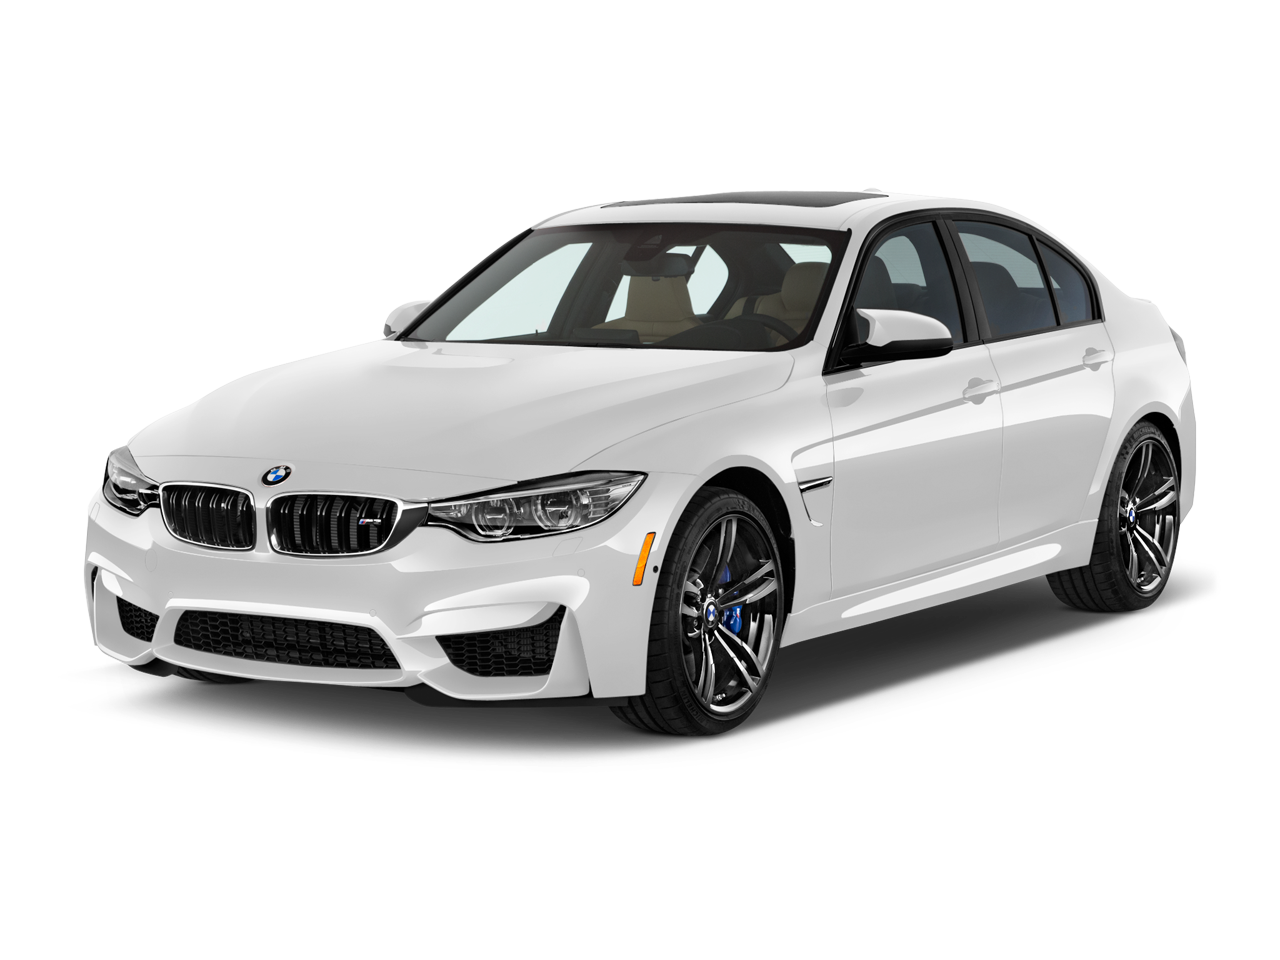 Car Bmw M3 2017 X6 Free Download PNG HQ PNG Image